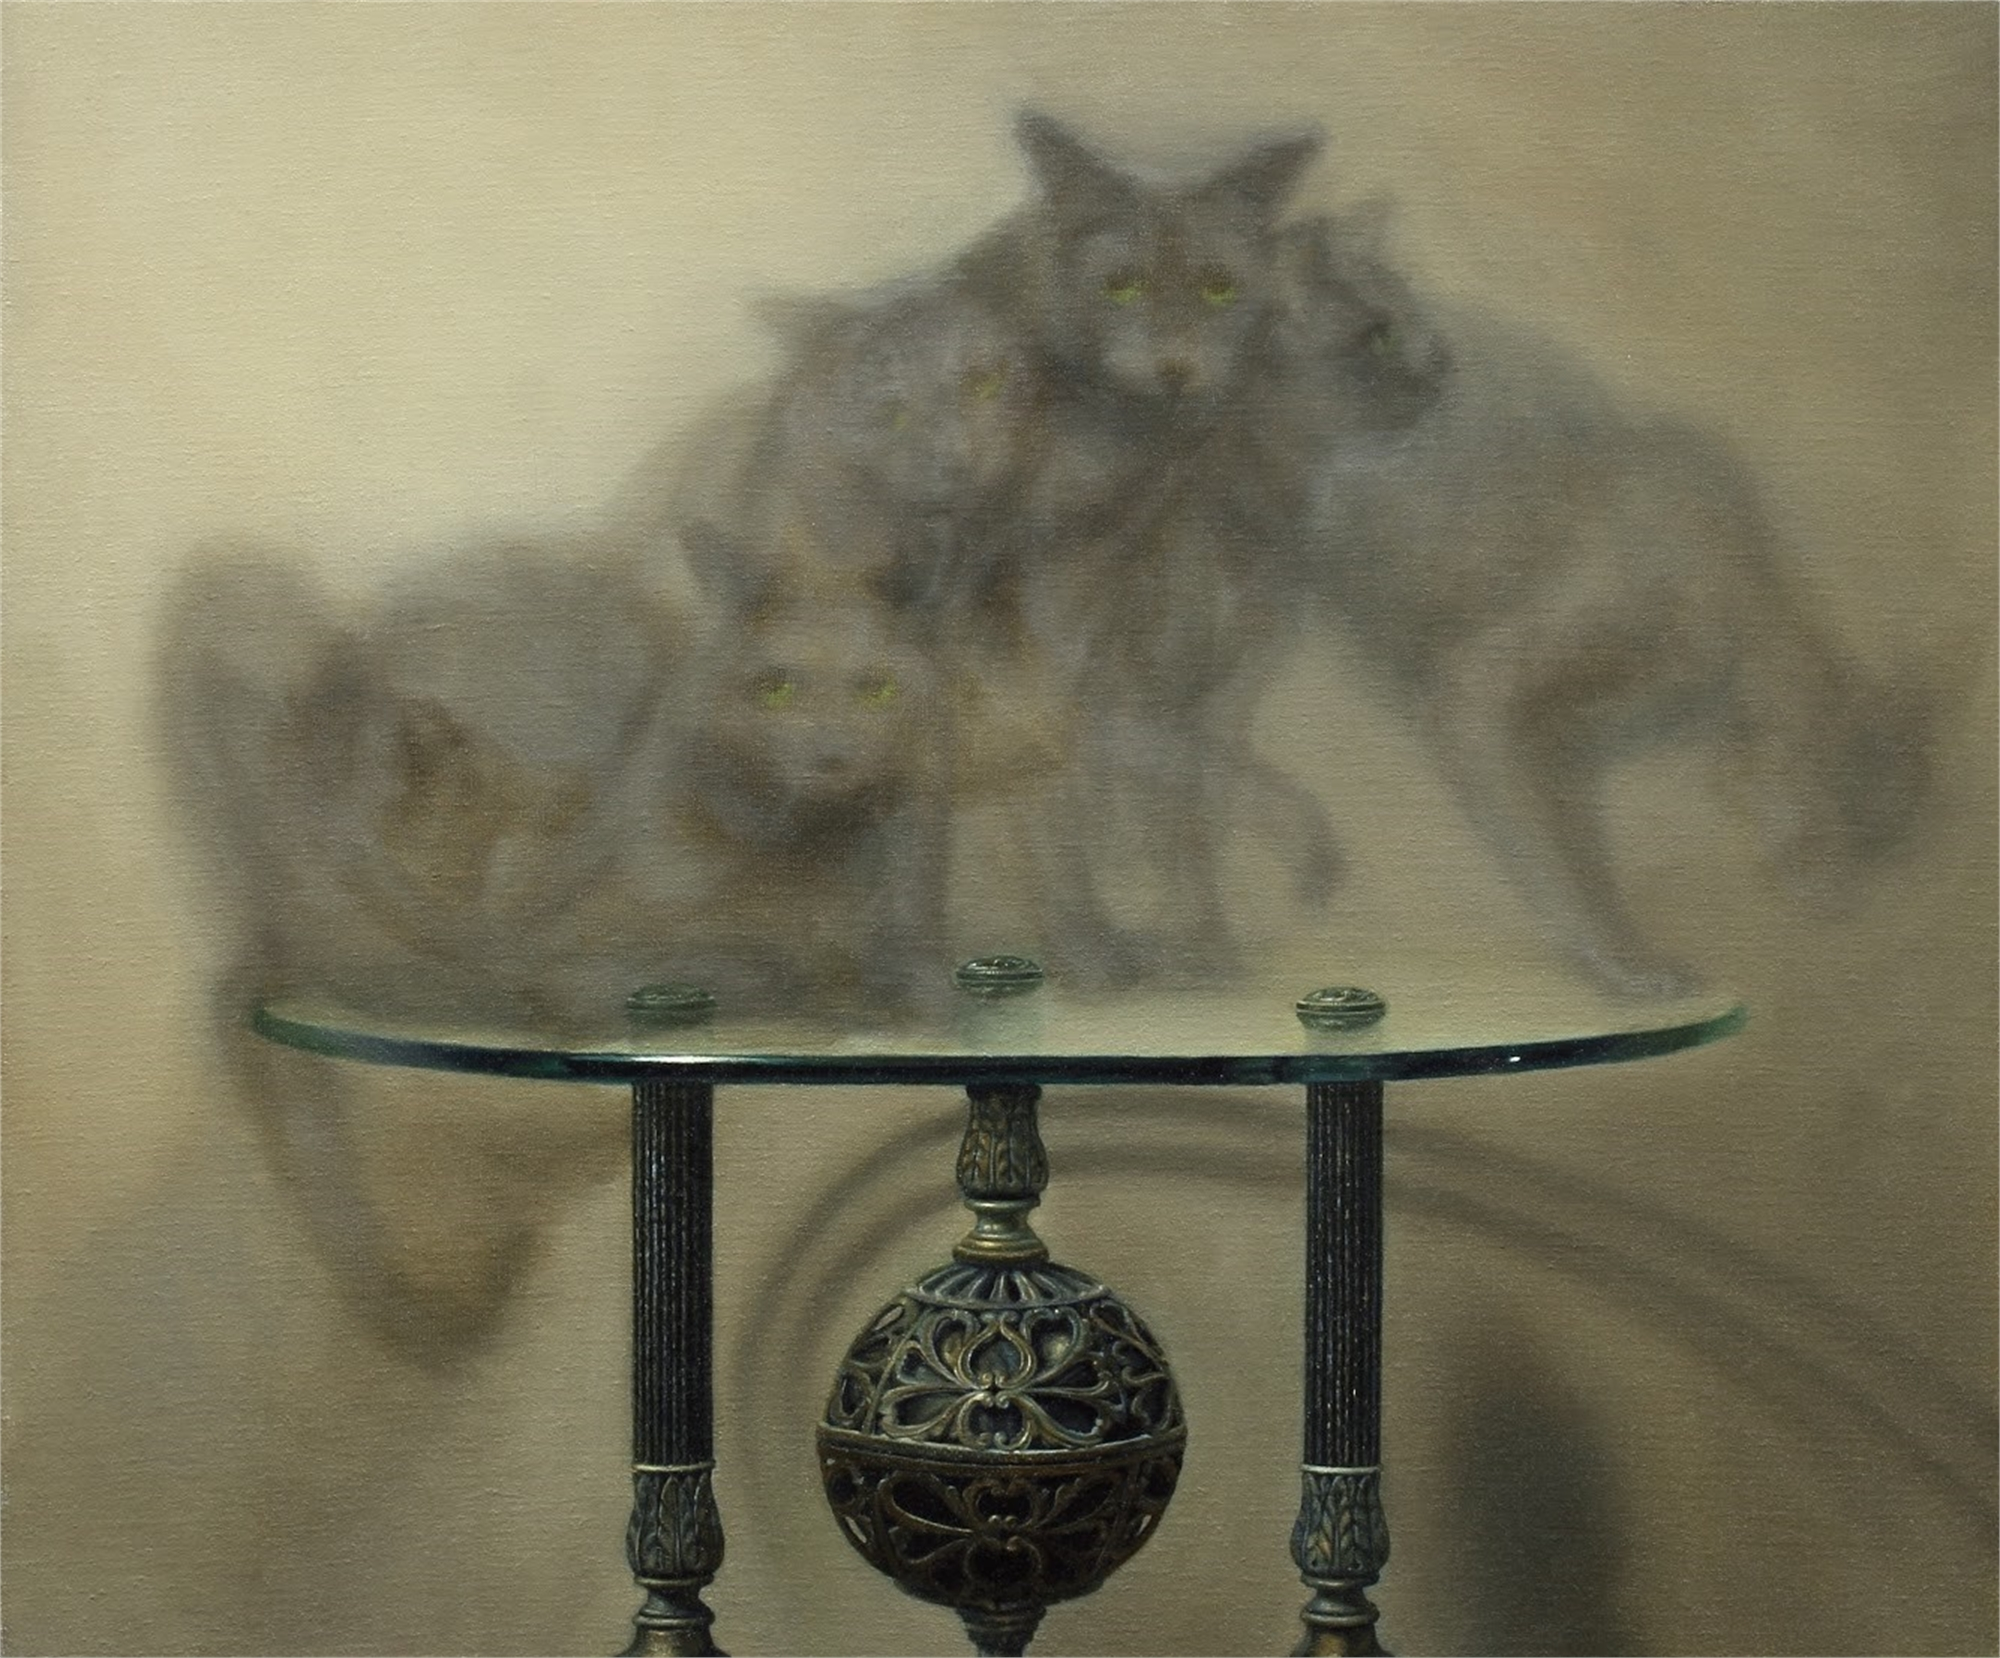 Cat on Table by Zane York